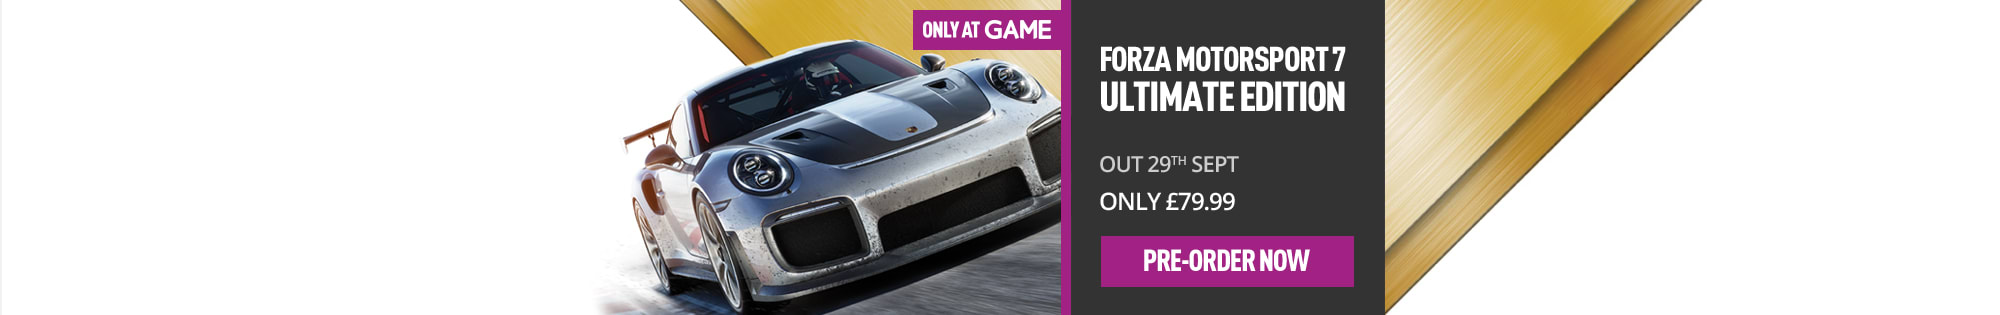 Forza 7 Motorsport for Xbox One - Homepage Banner